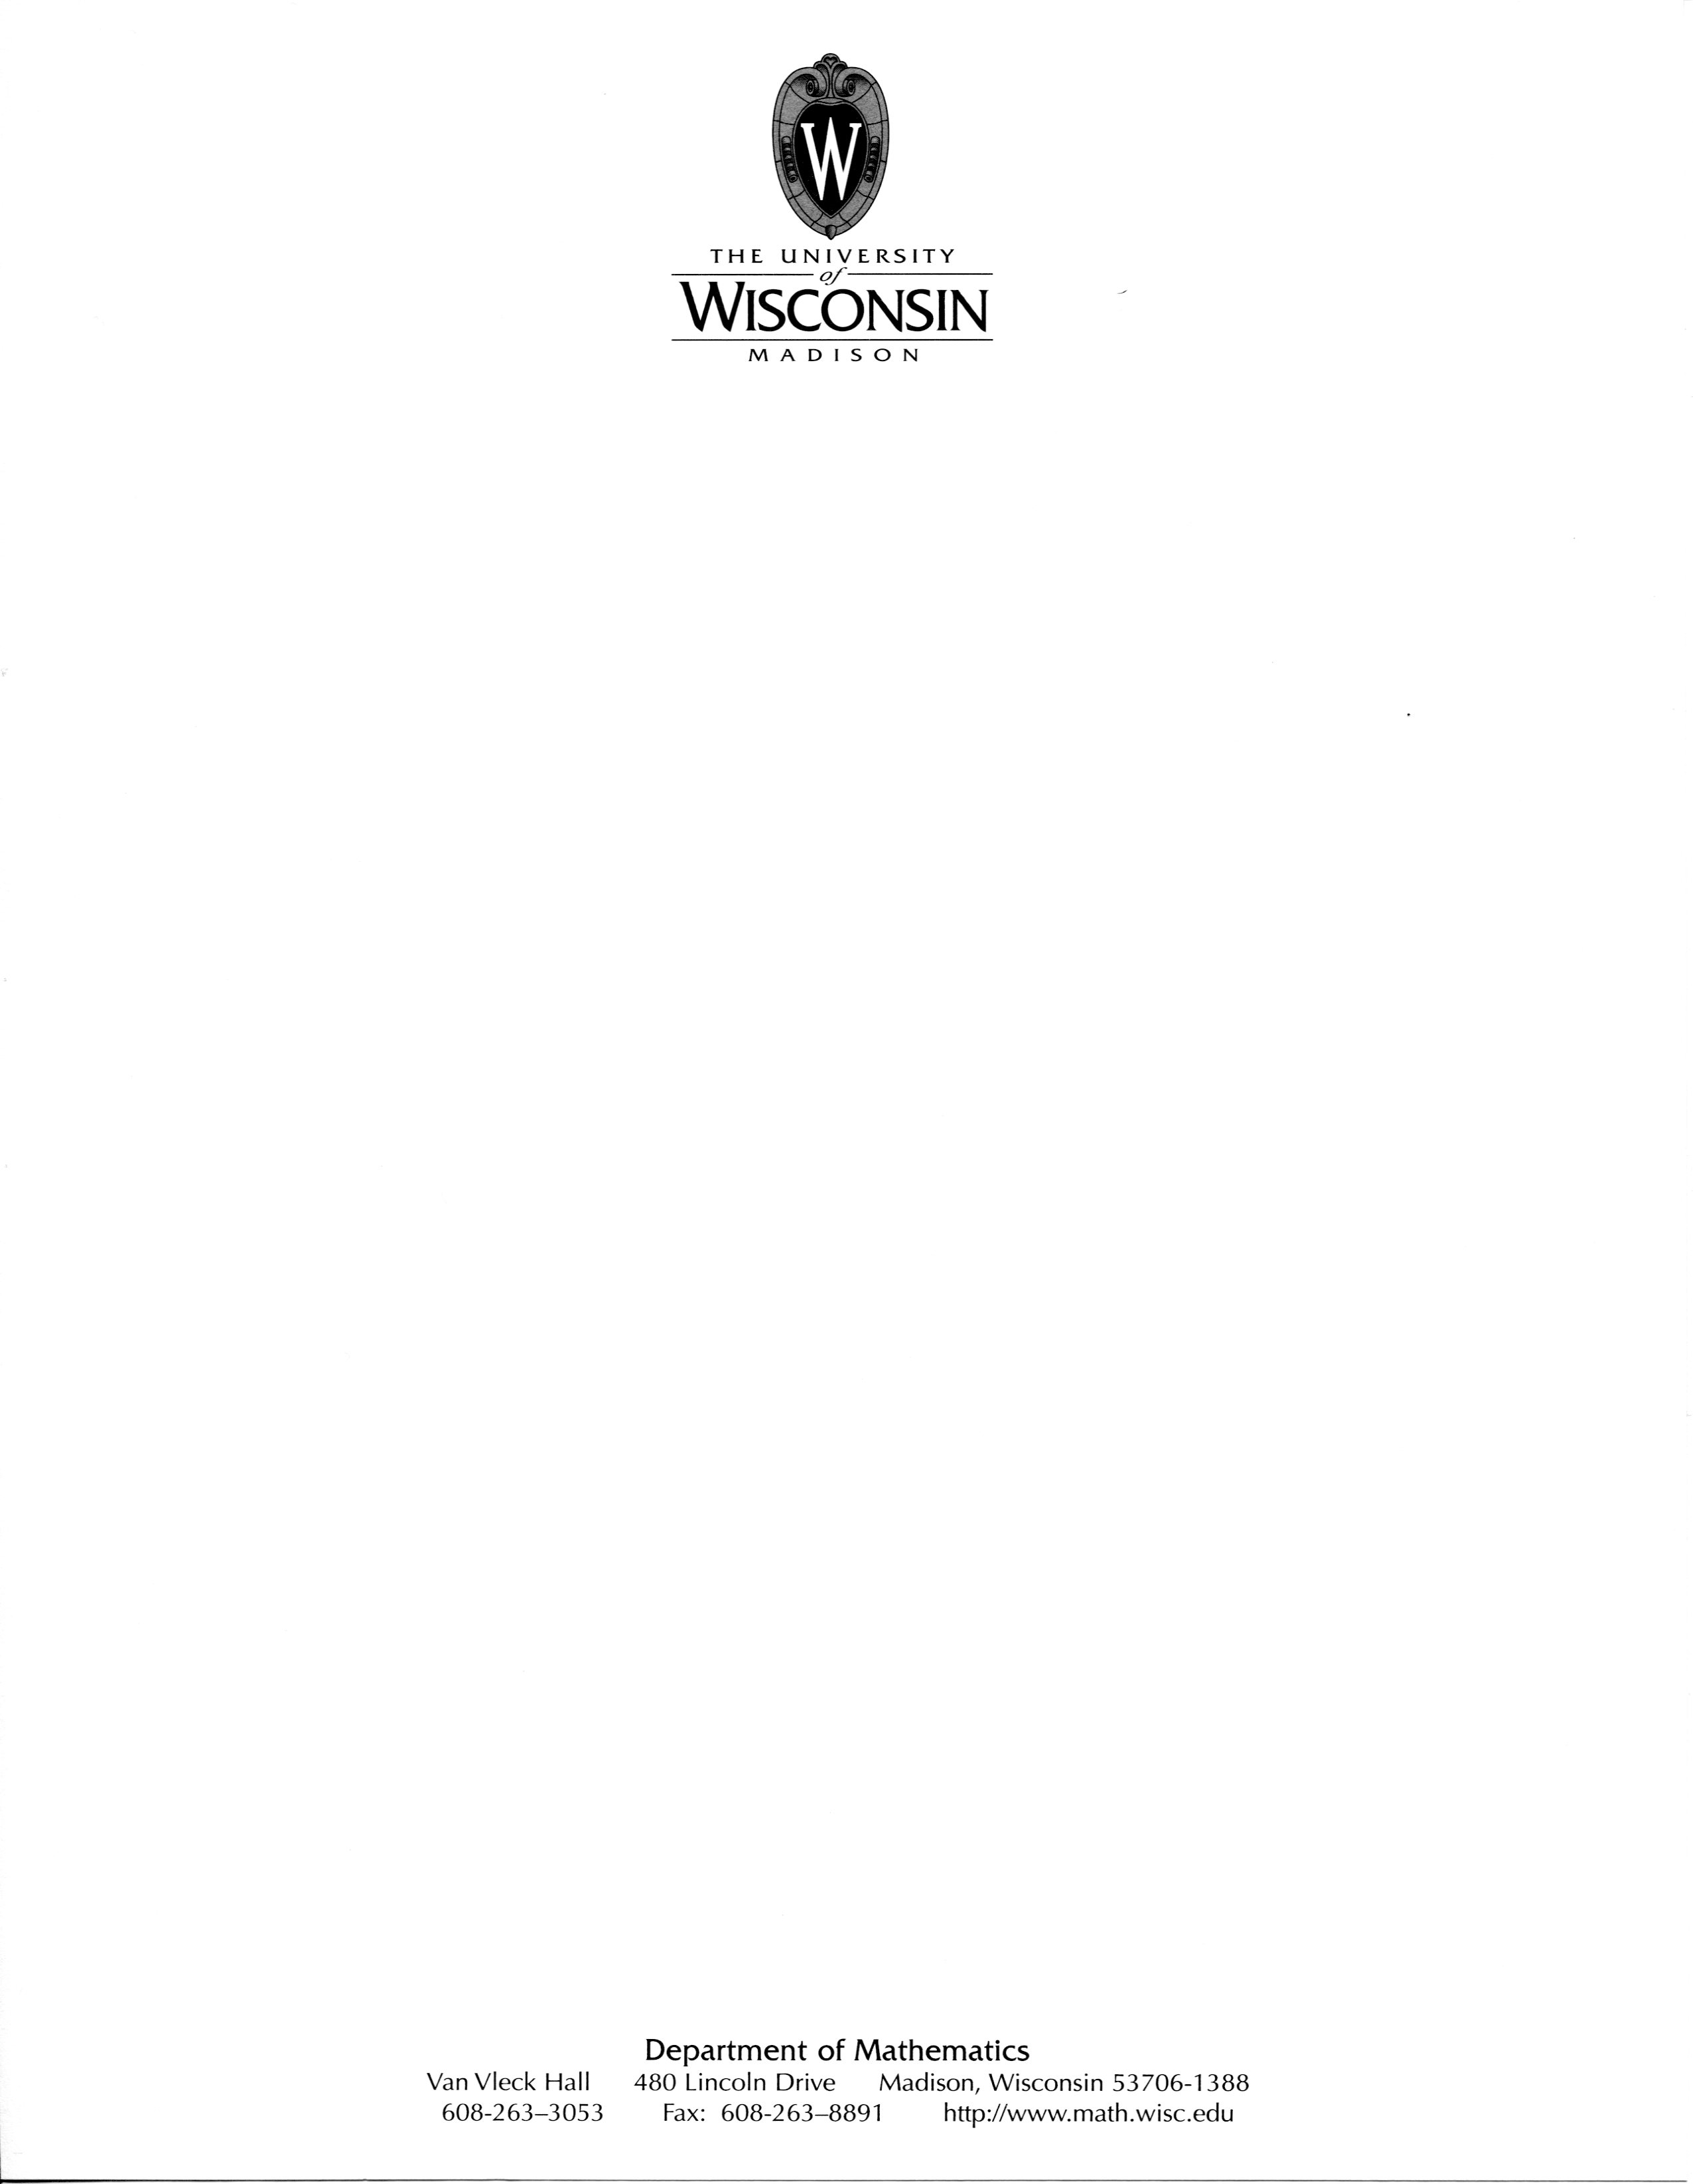 Uw madison thesis template best research proposal writing service ca